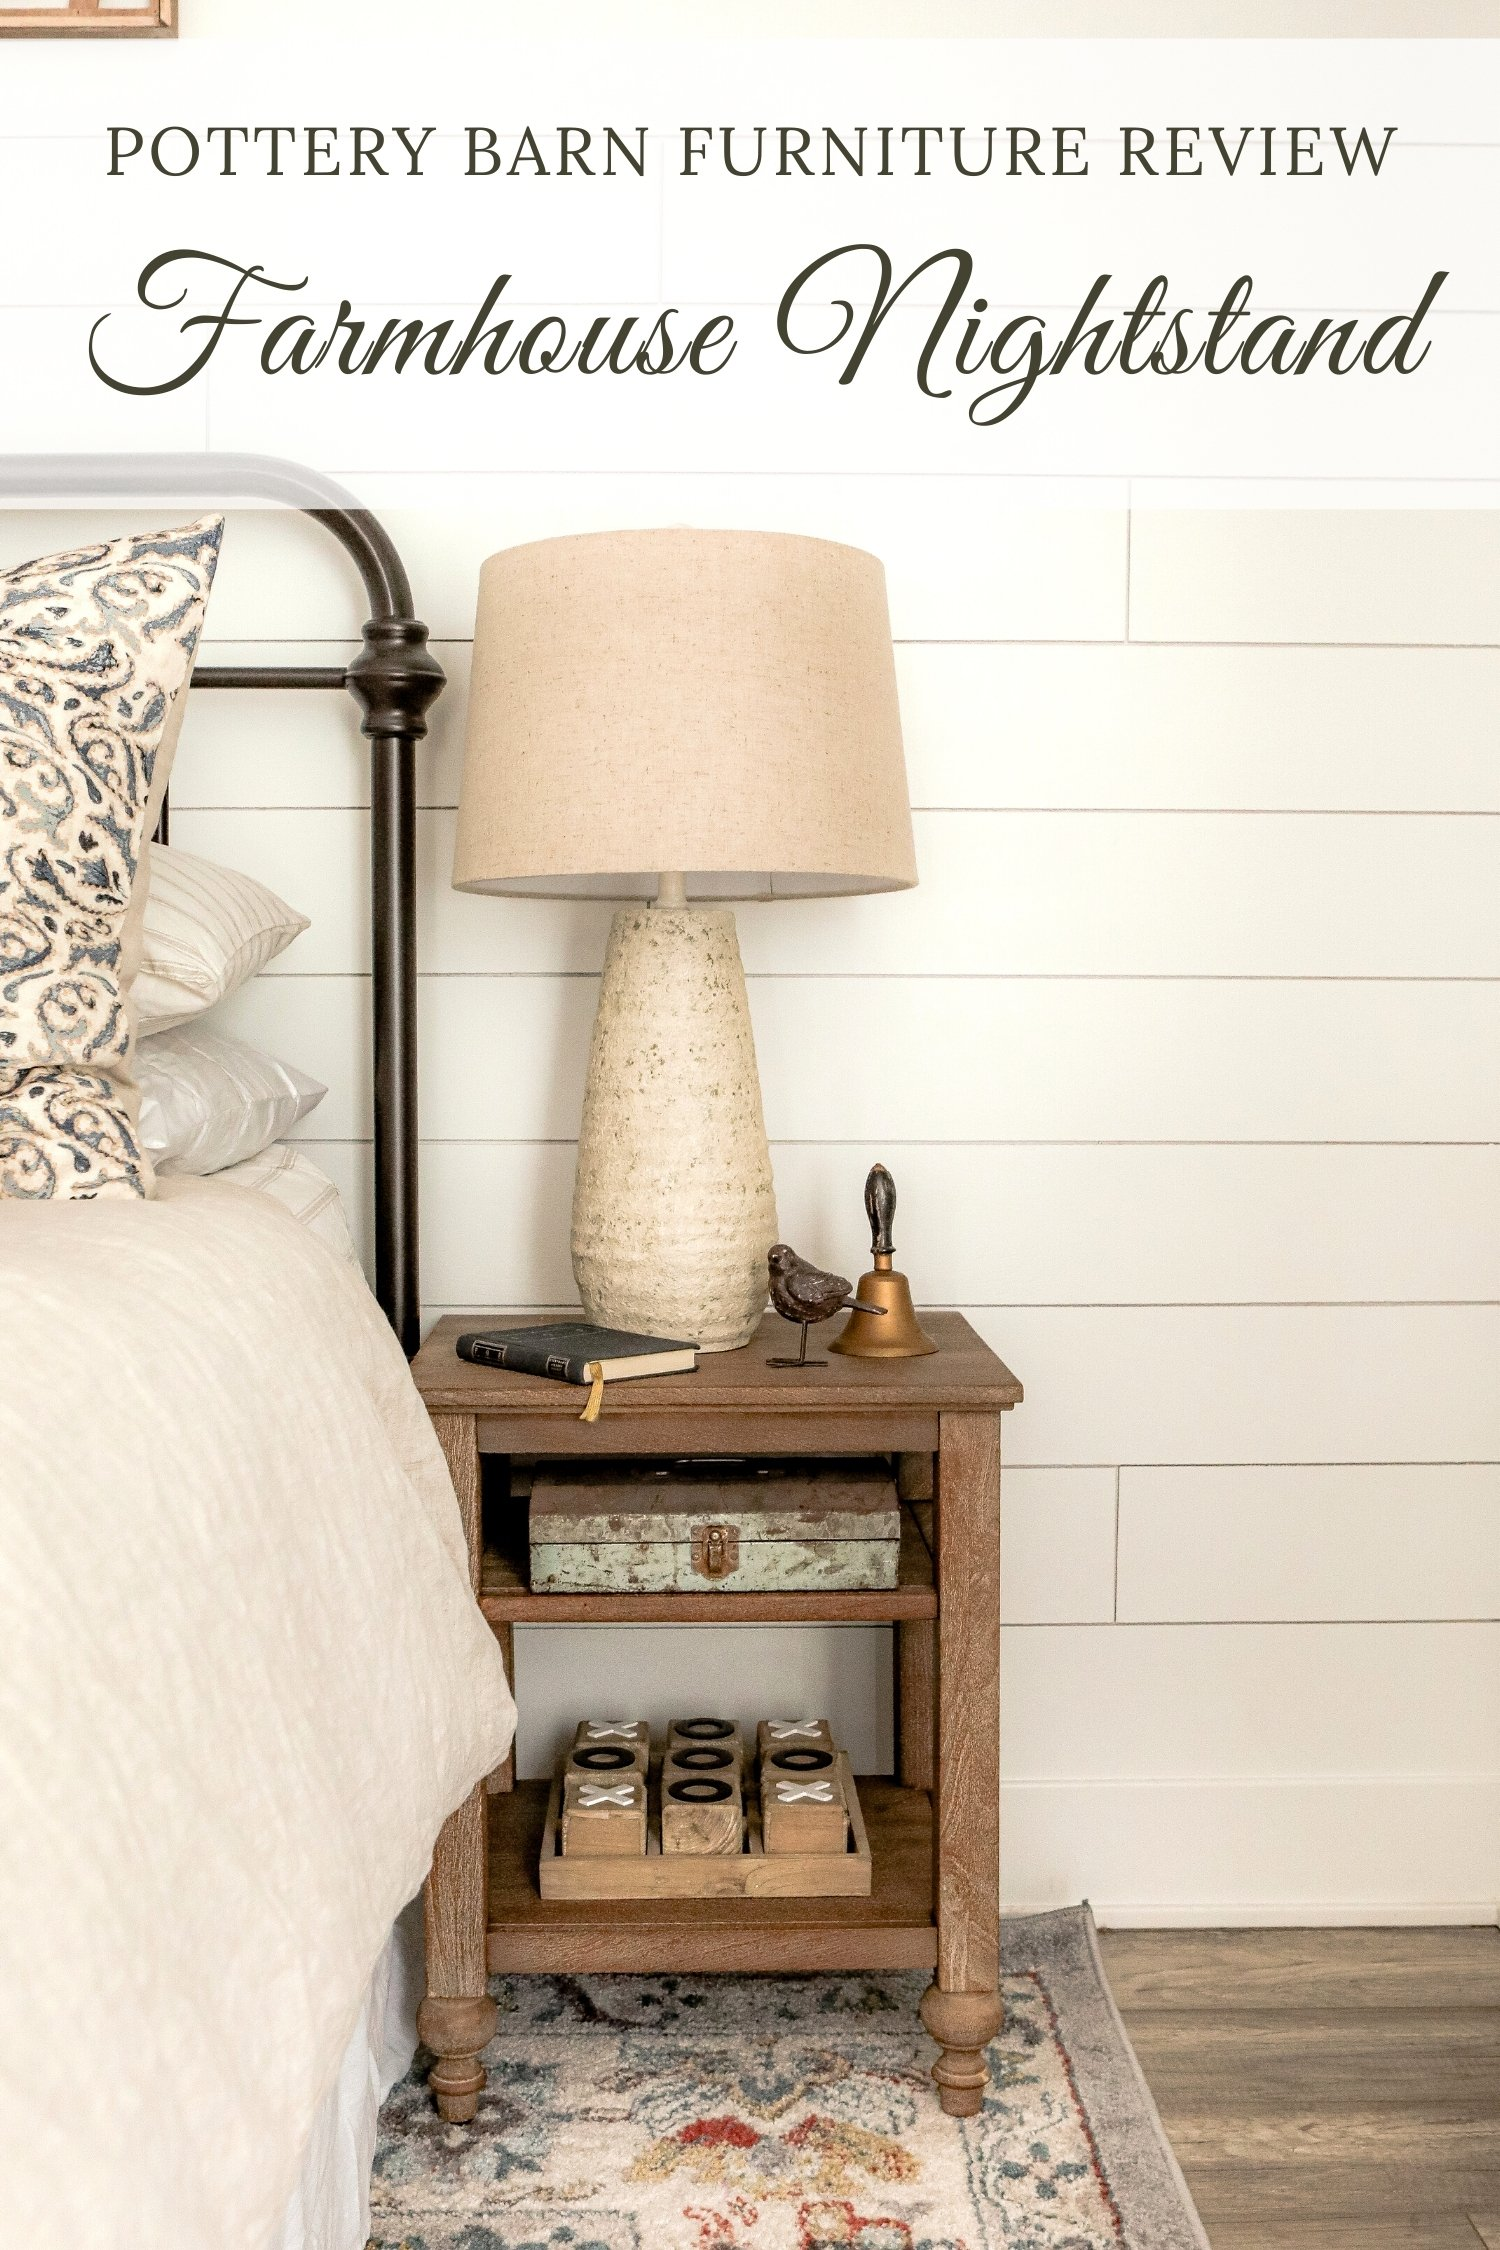 Farmhouse Nightstand Pottery barn furniture Review